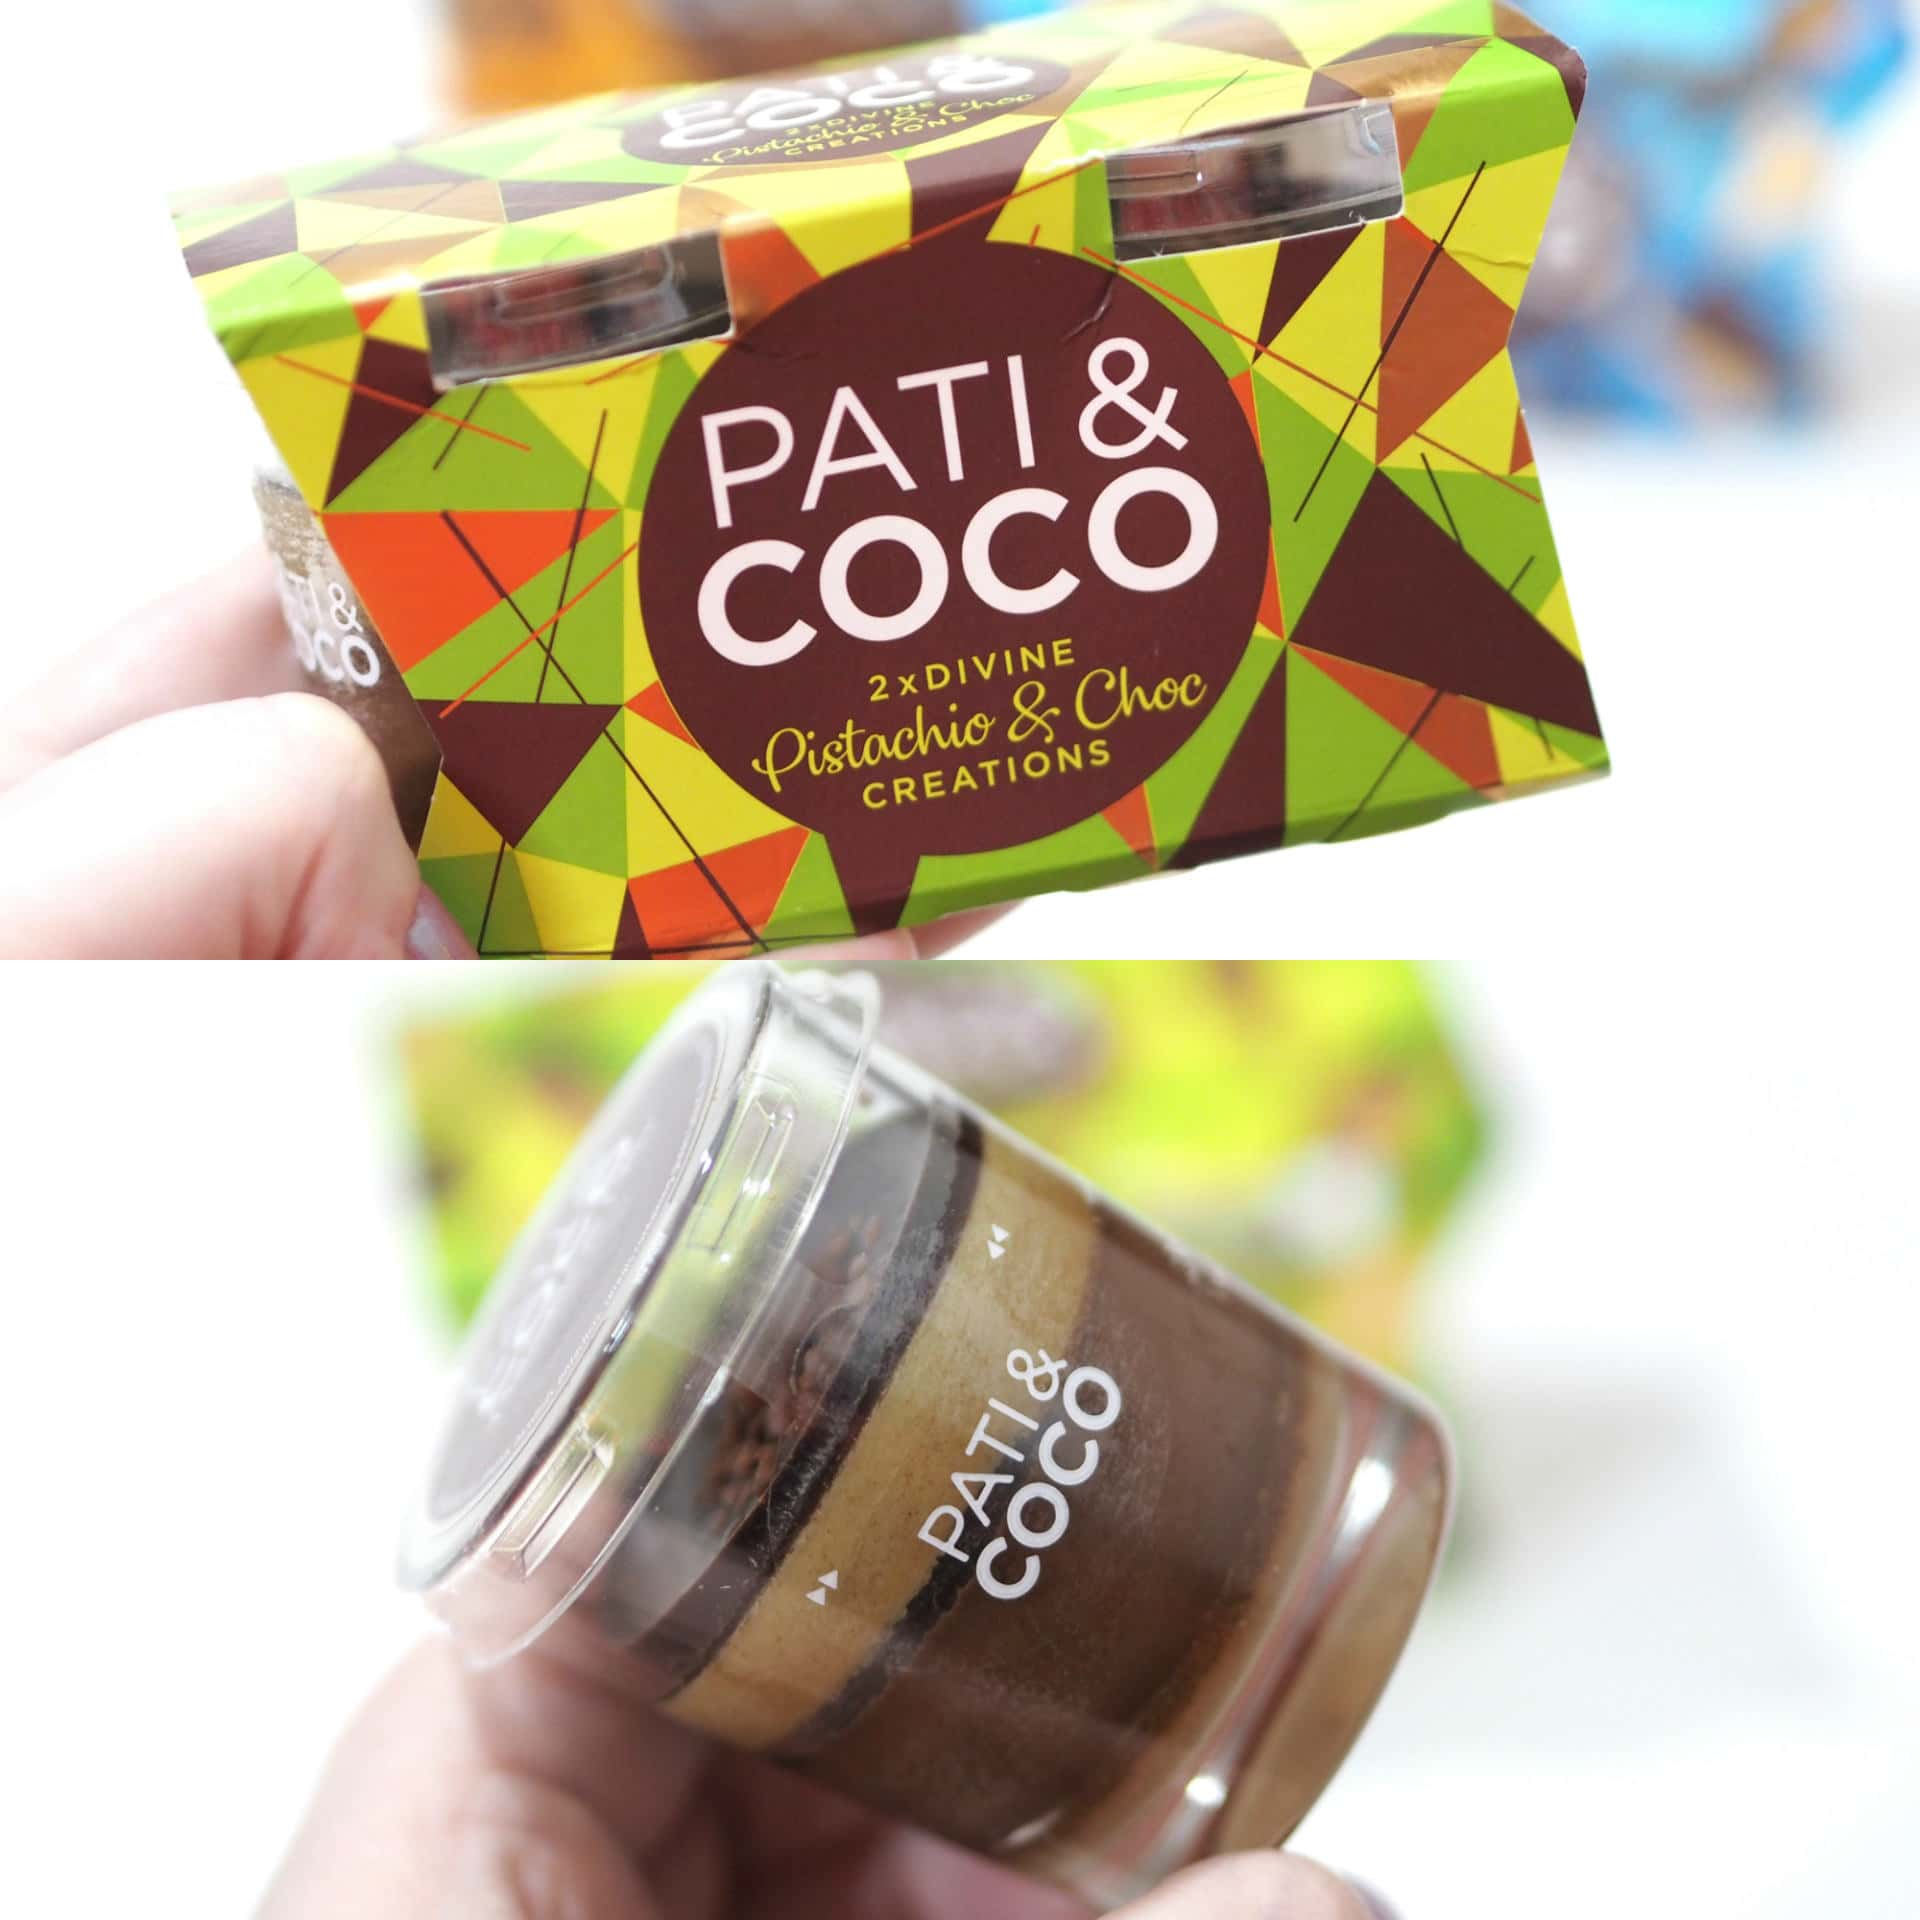 Festive Food, Treats and Drinks Guide 2019 - Pati & Coco Divine Chocolate Creations